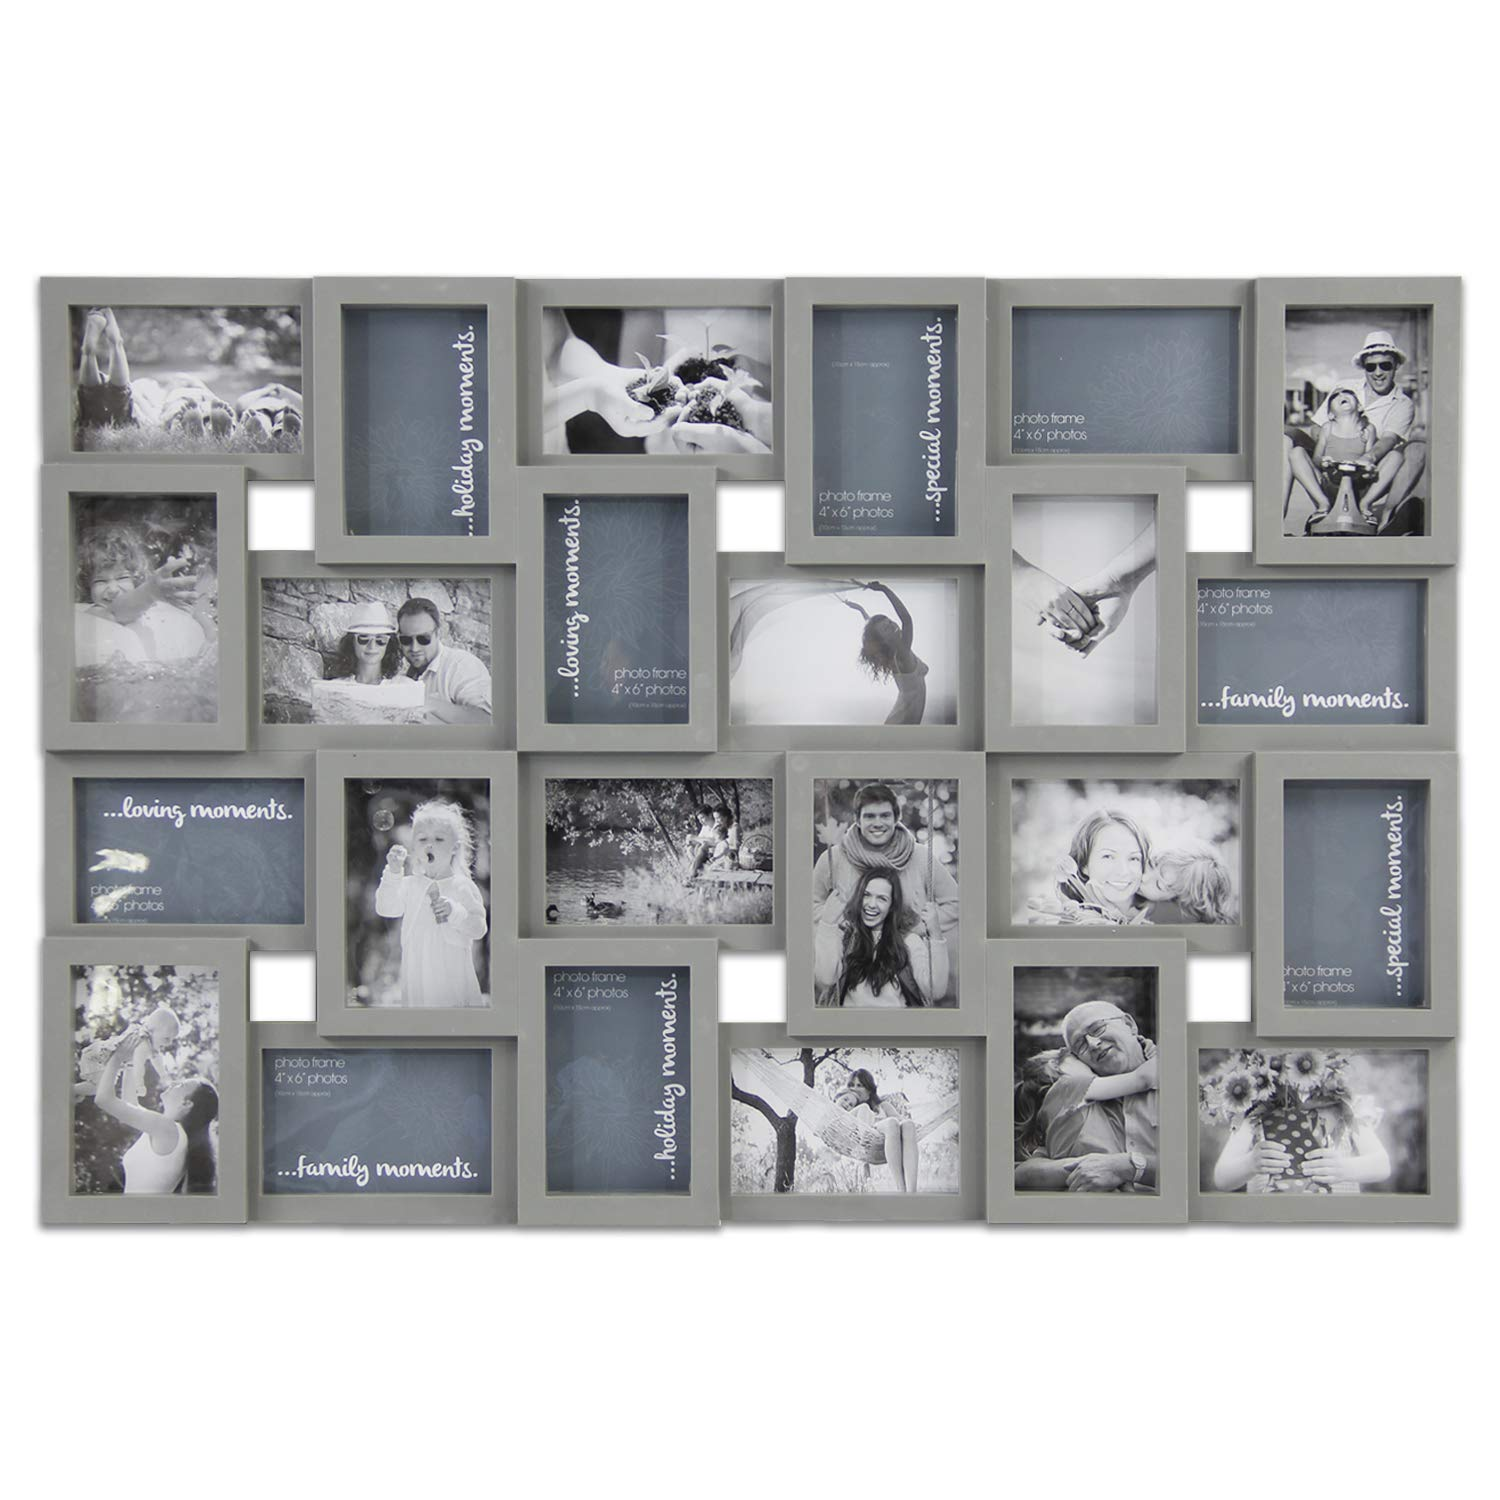 5287db15db8 Hello Laura - Photo Frame Picture Frame - 24 Sockets Gray Finish Frame  Collage Collection Wall Hanging Picture ...